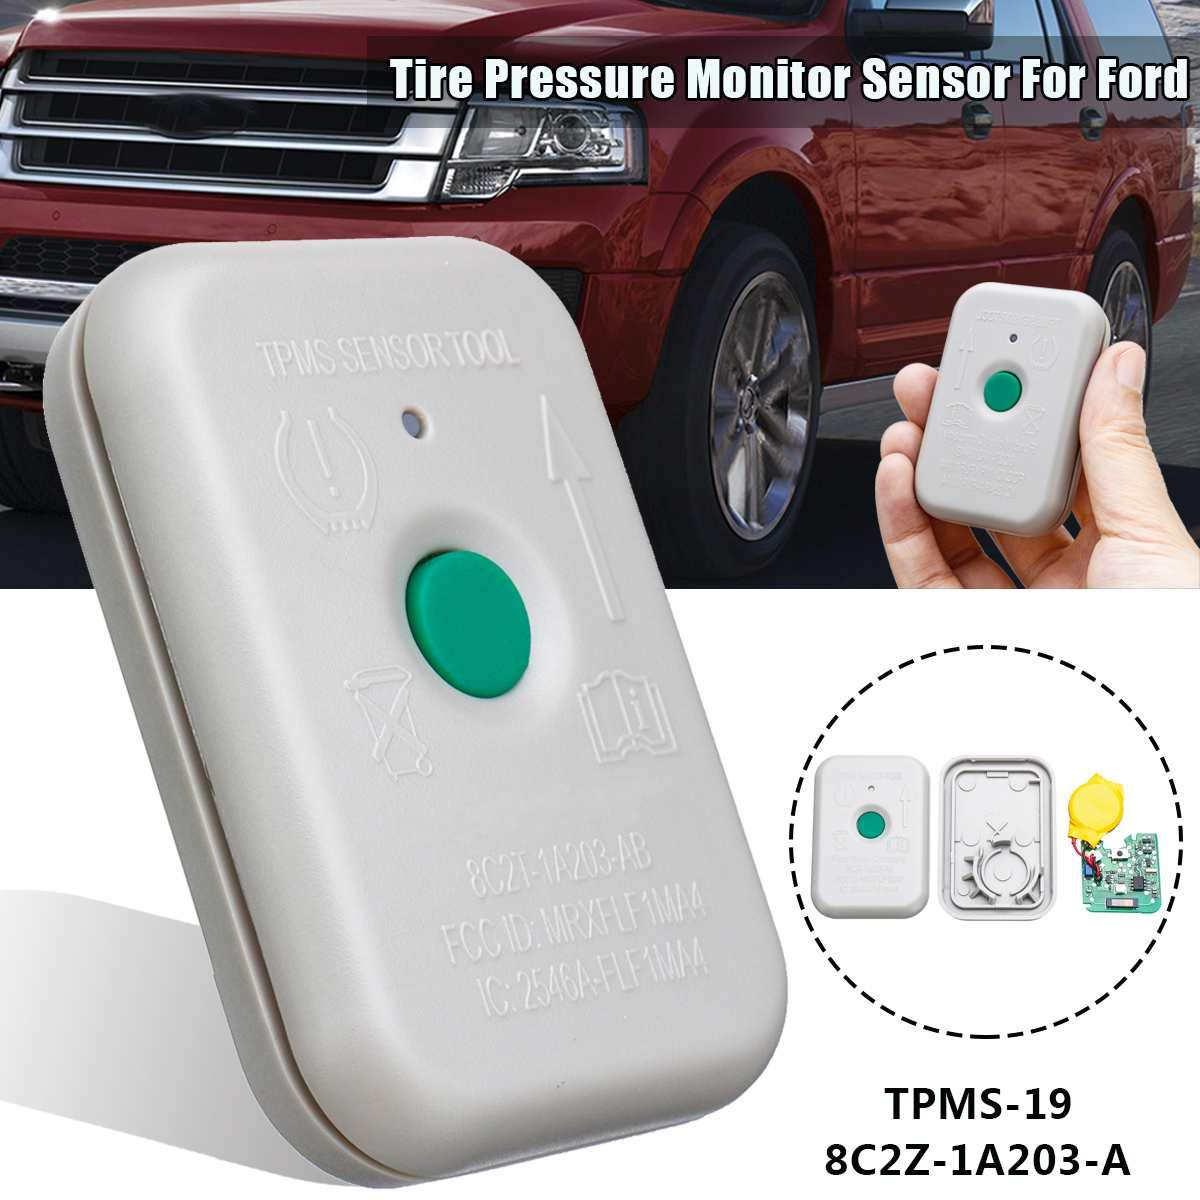 Tire Presure Monitor Sensor Activation Tool for Ford 8C2Z-1A203-A TPMS-19 TPMS19 8C2T1A203AB TPMS Sensor